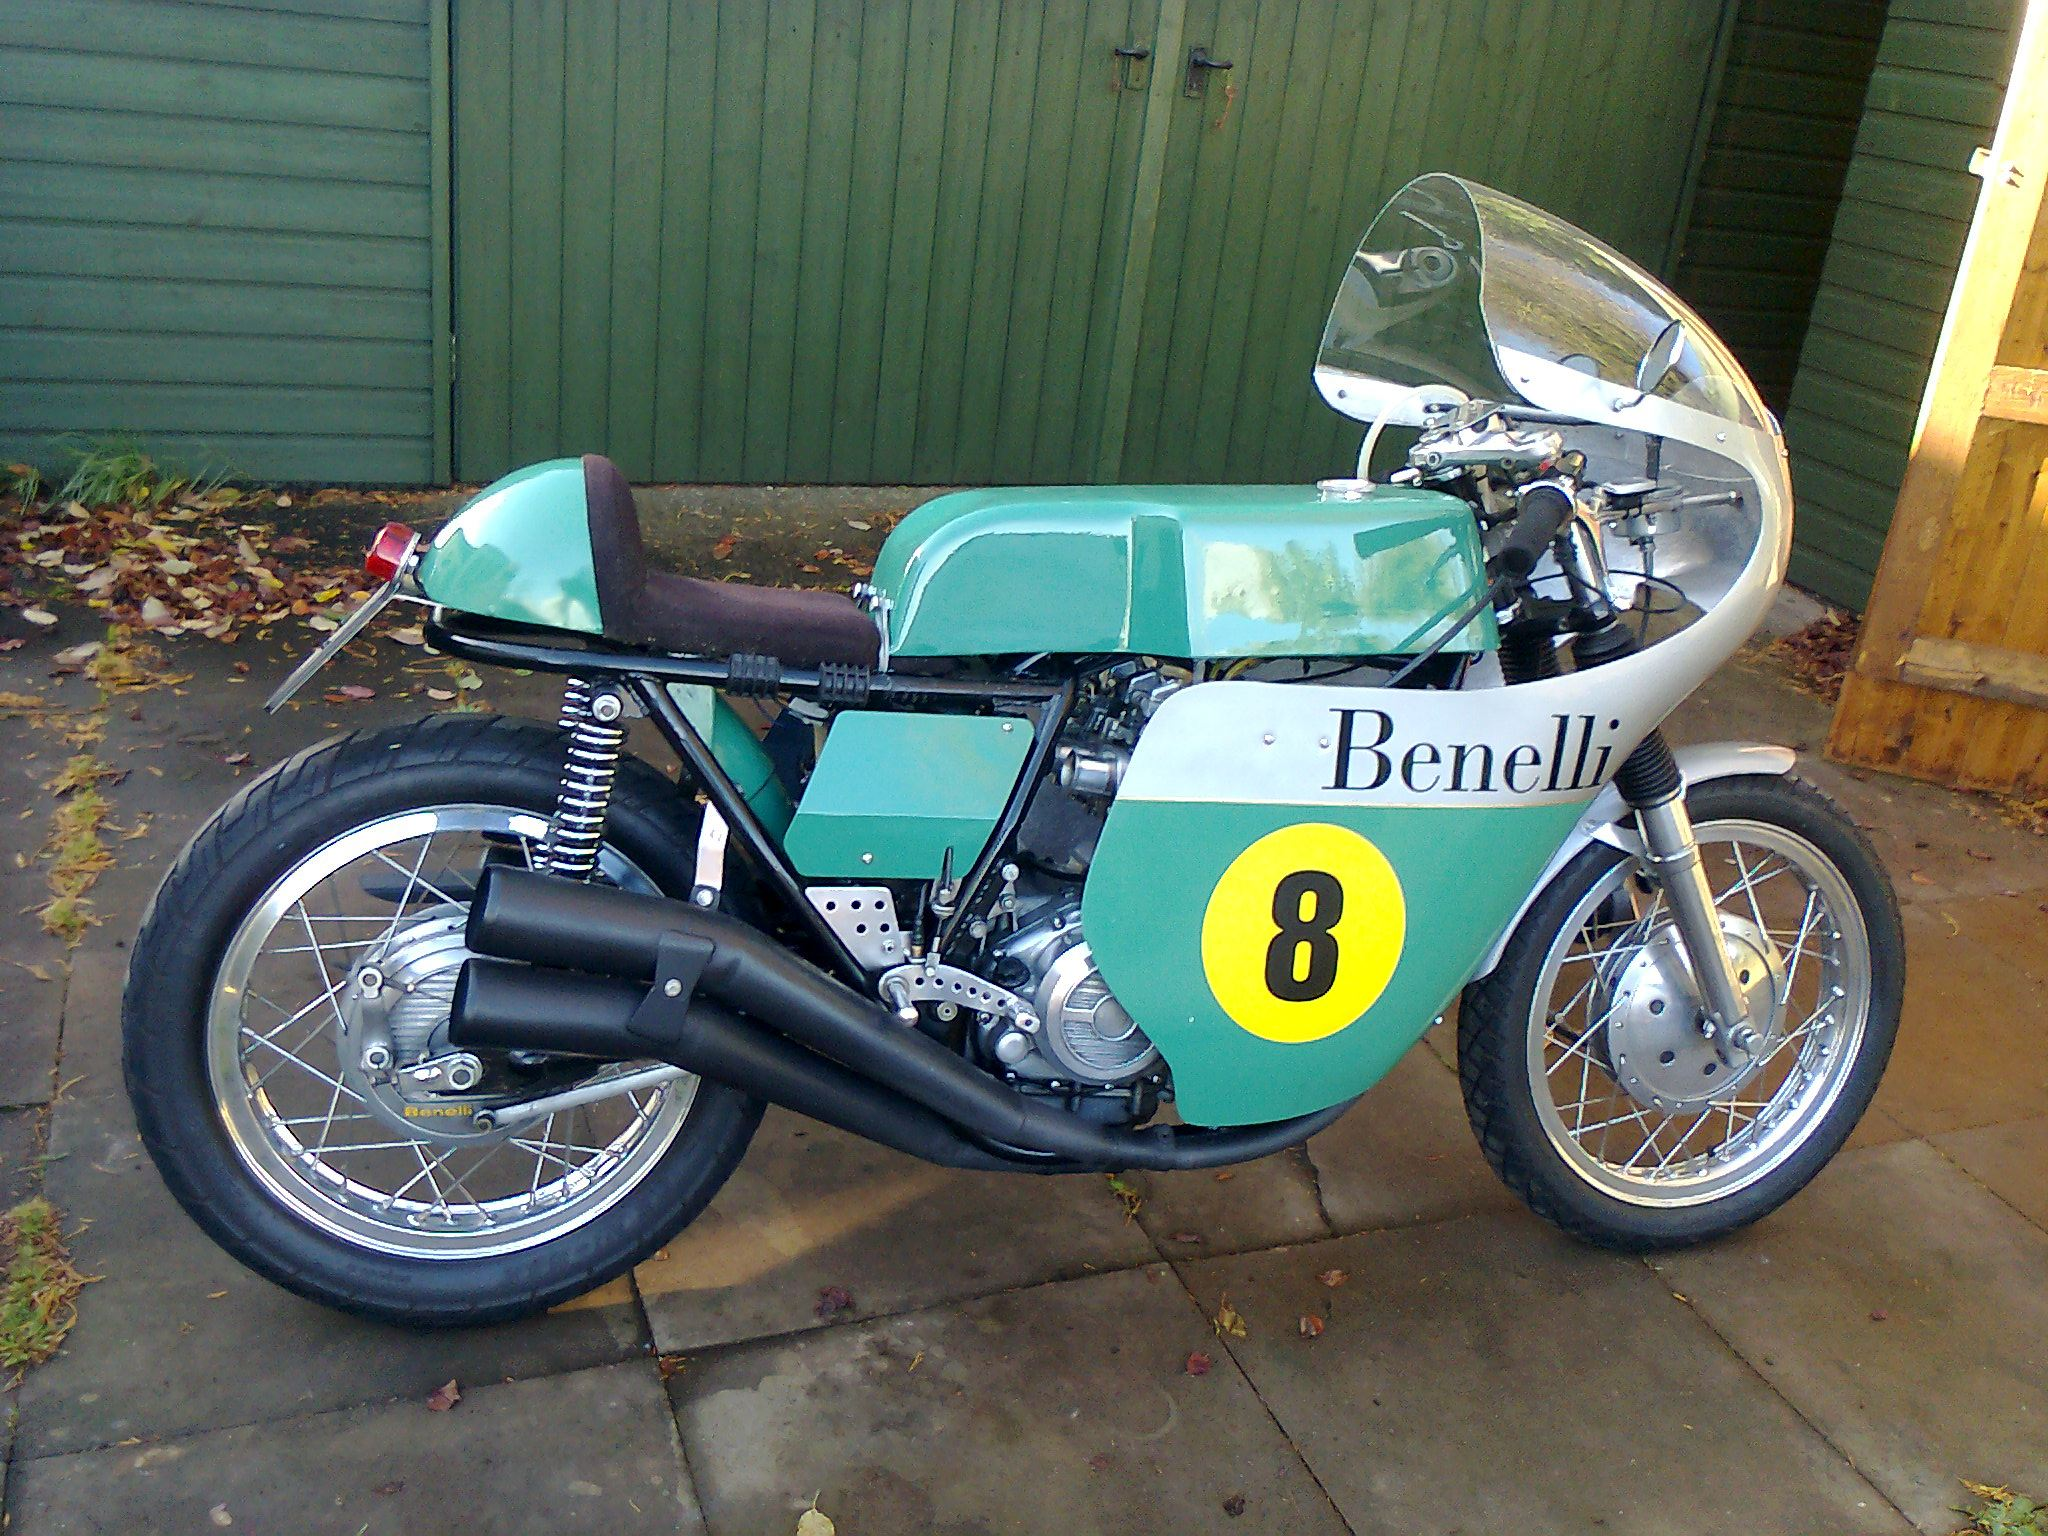 Benelli classic race bikes classic motorbikes for Classic motors for sale